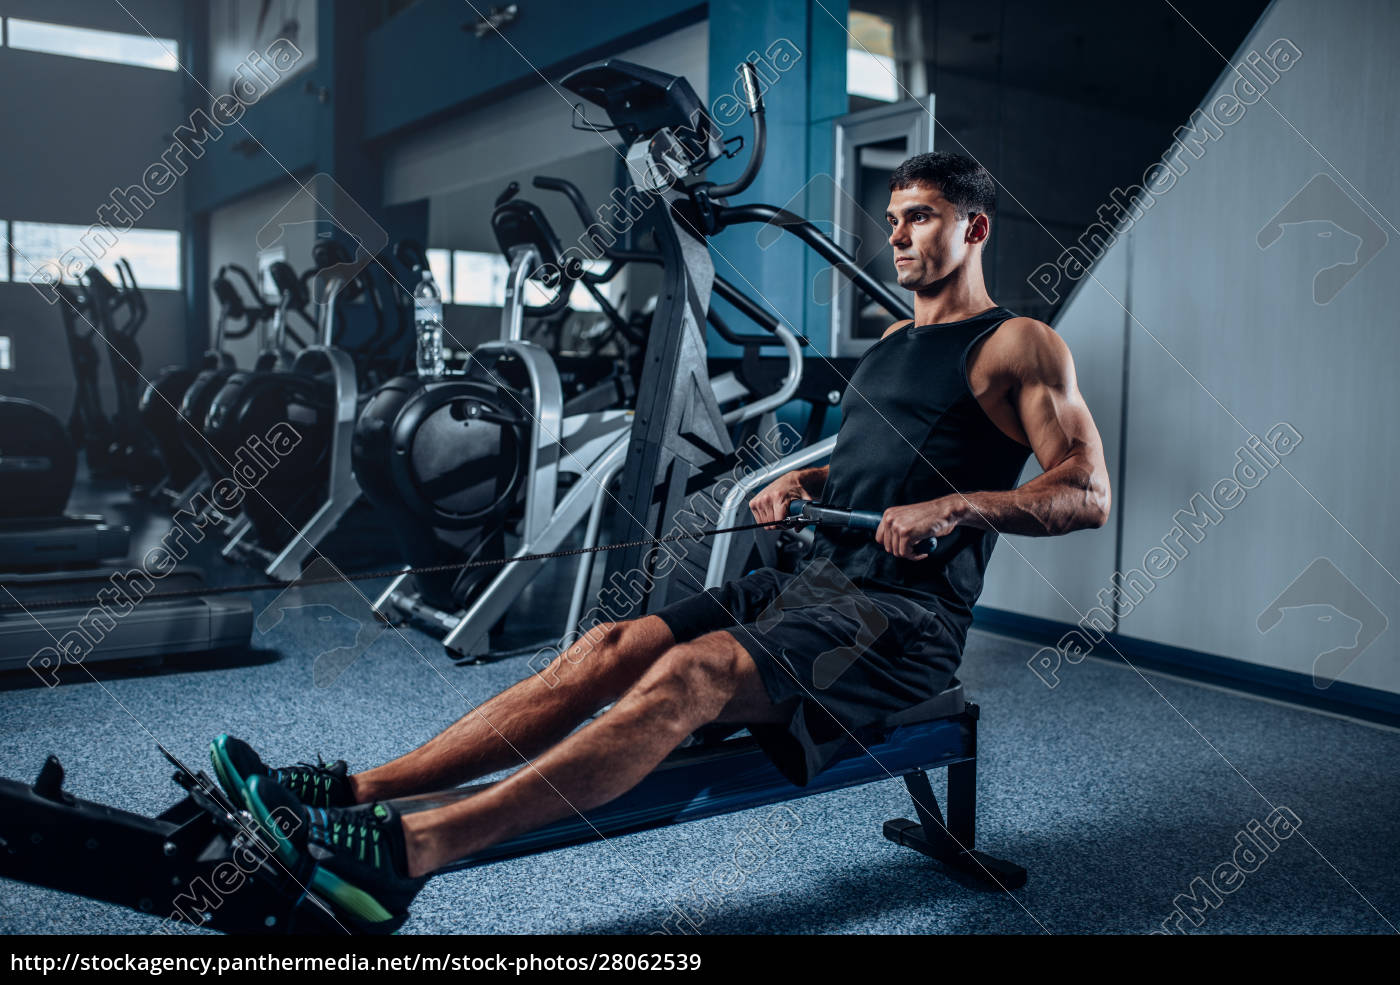 muscular, man, workout, on, exercise, machine - 28062539